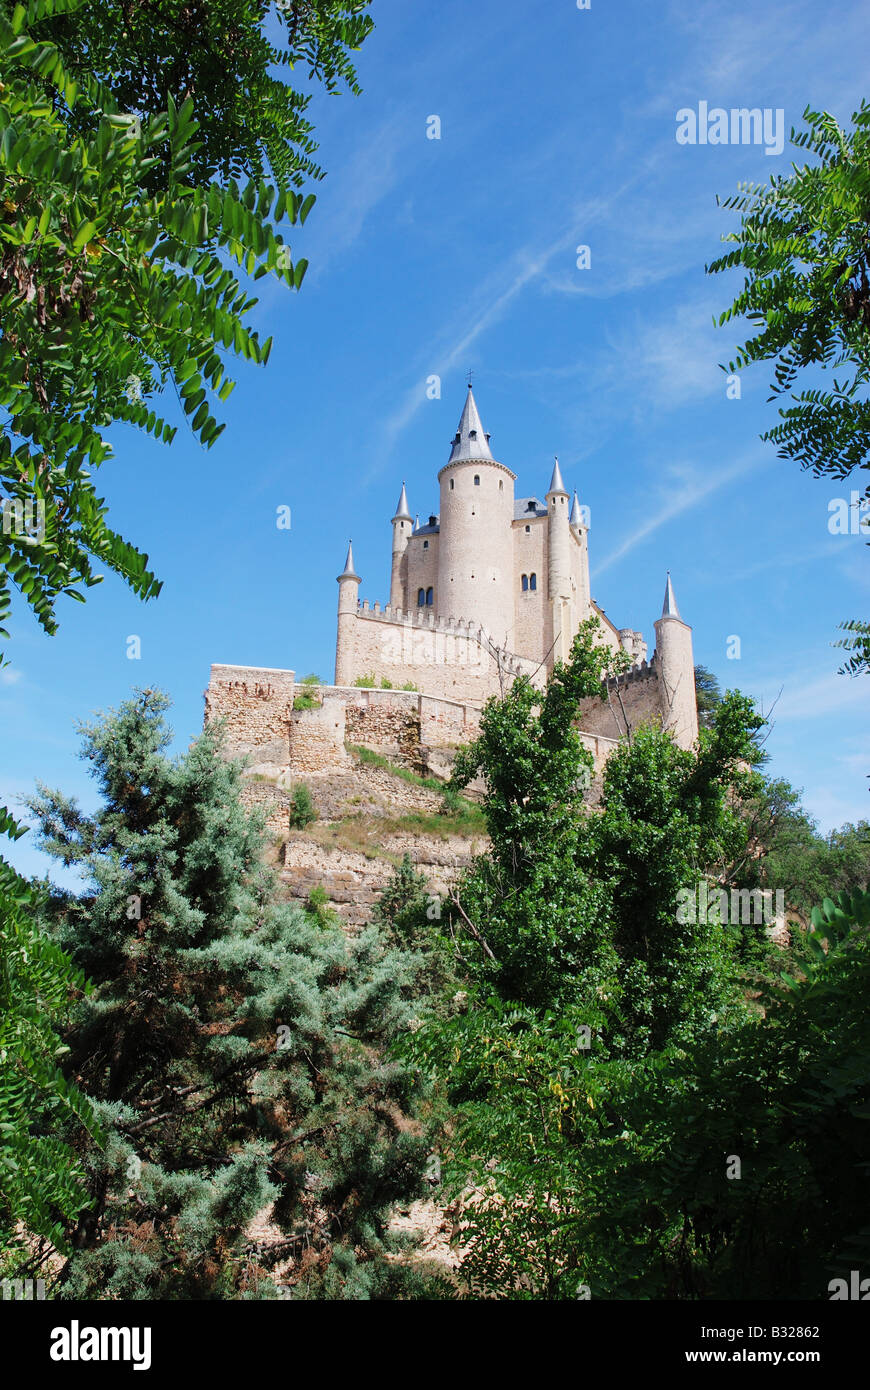 The Alcazar. Segovia. Castile Leon. Spain. Stock Photo